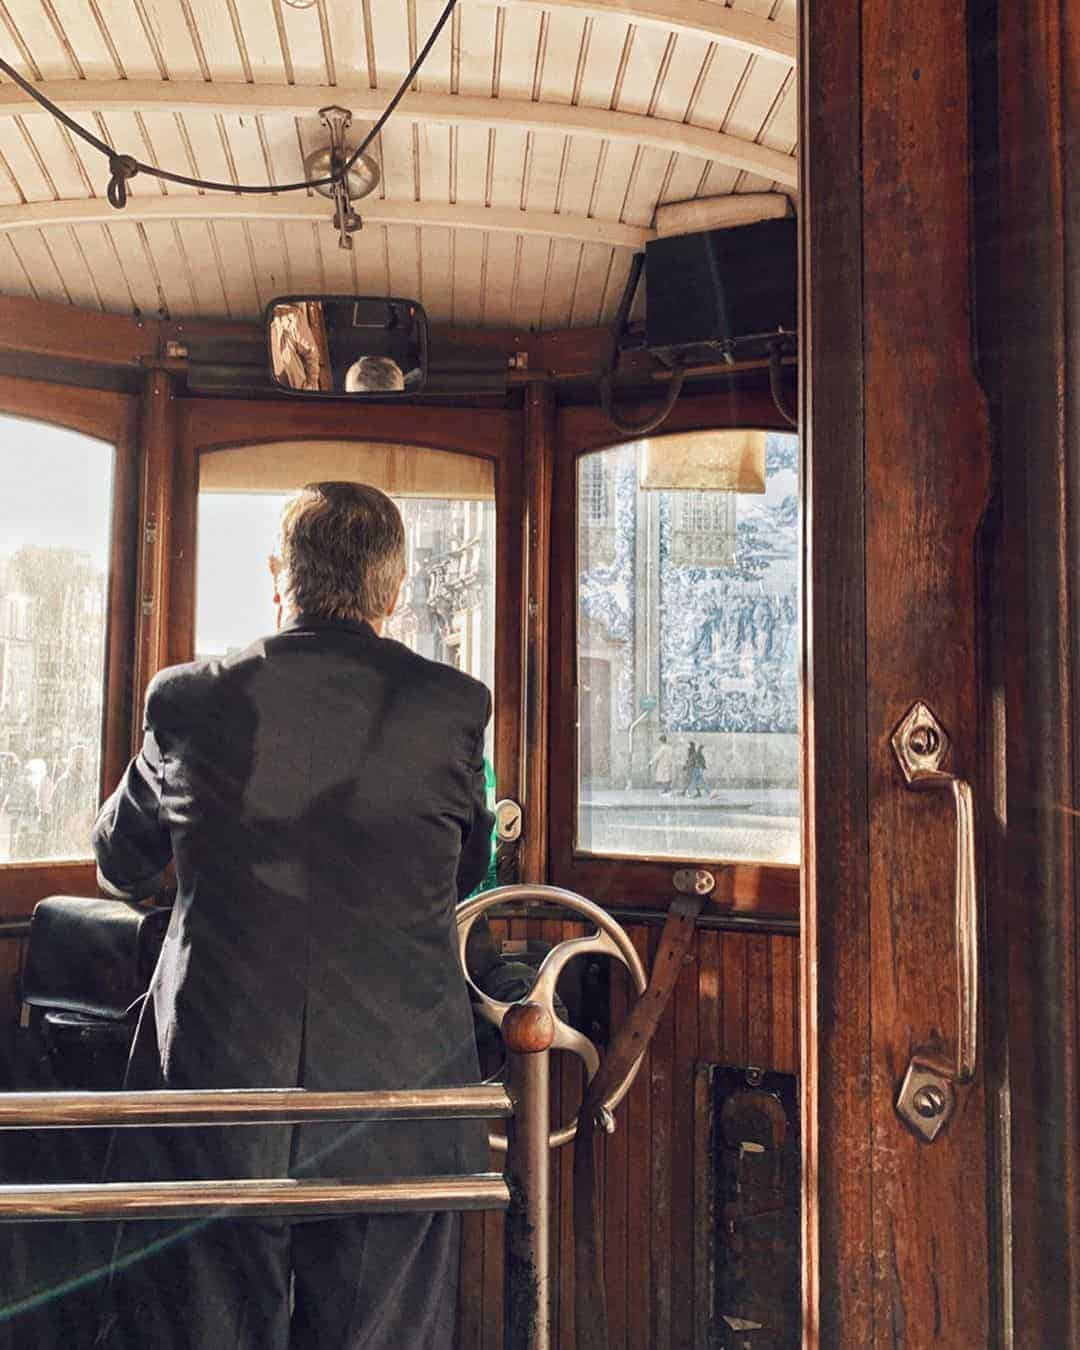 Things to do in Porto: Ride the old-fashioned trolley across town